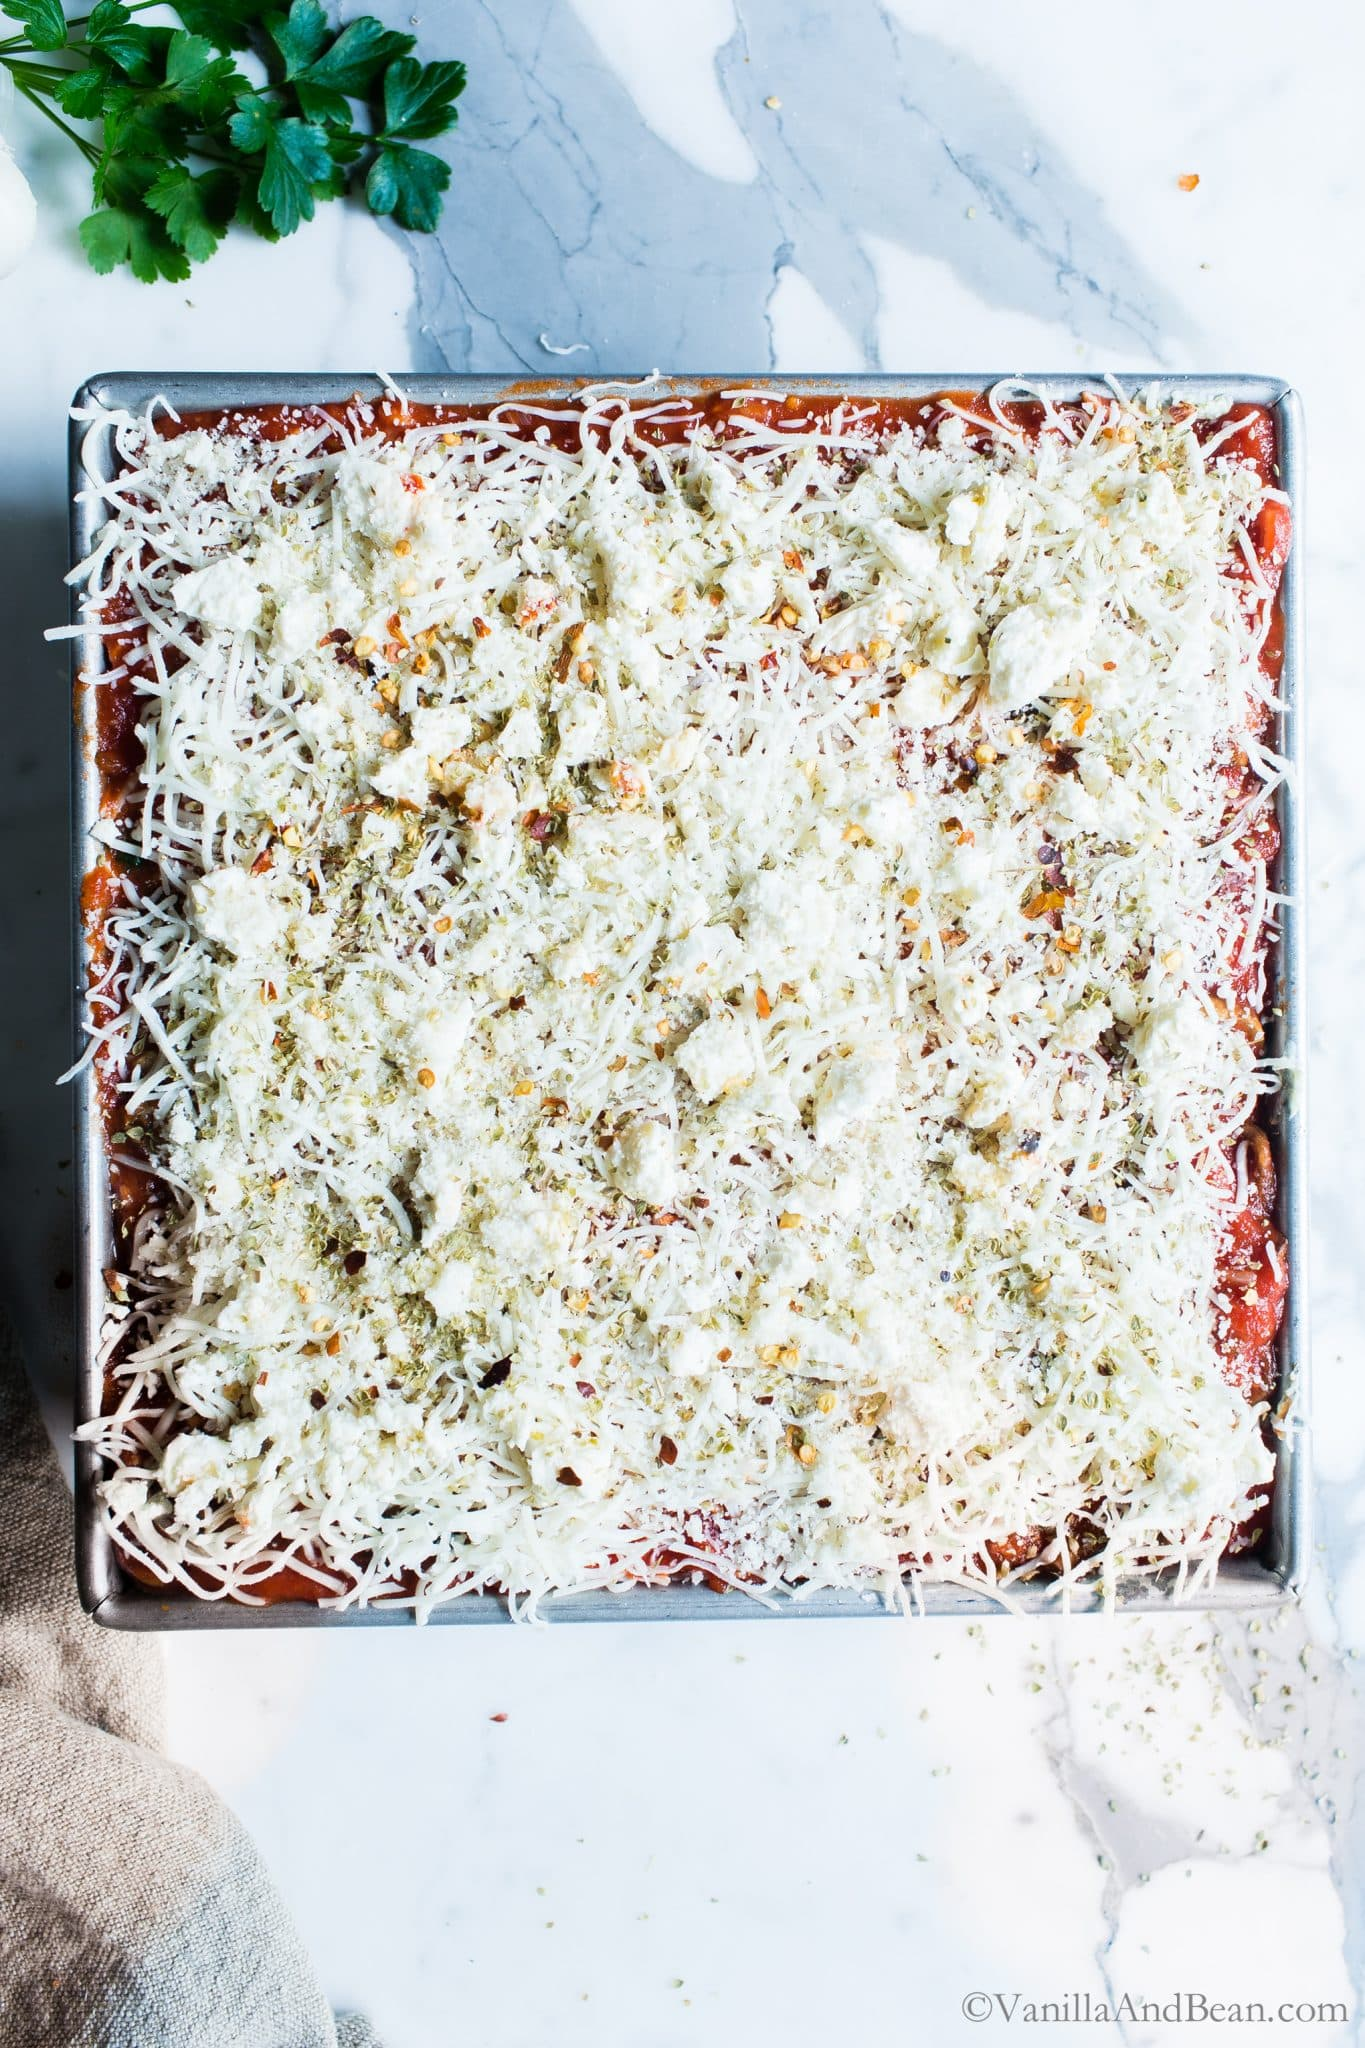 Layers of garlicky cheesy goodness in this easier no boil lasagna. Spinach-Mushroom Pesto Ricotta Lasagna can be made ahead, feeds a small crowd and leftovers freeze with ease! #NoBoilLasagna #Vegetarian #GlutenFreeLasagna #Dinner